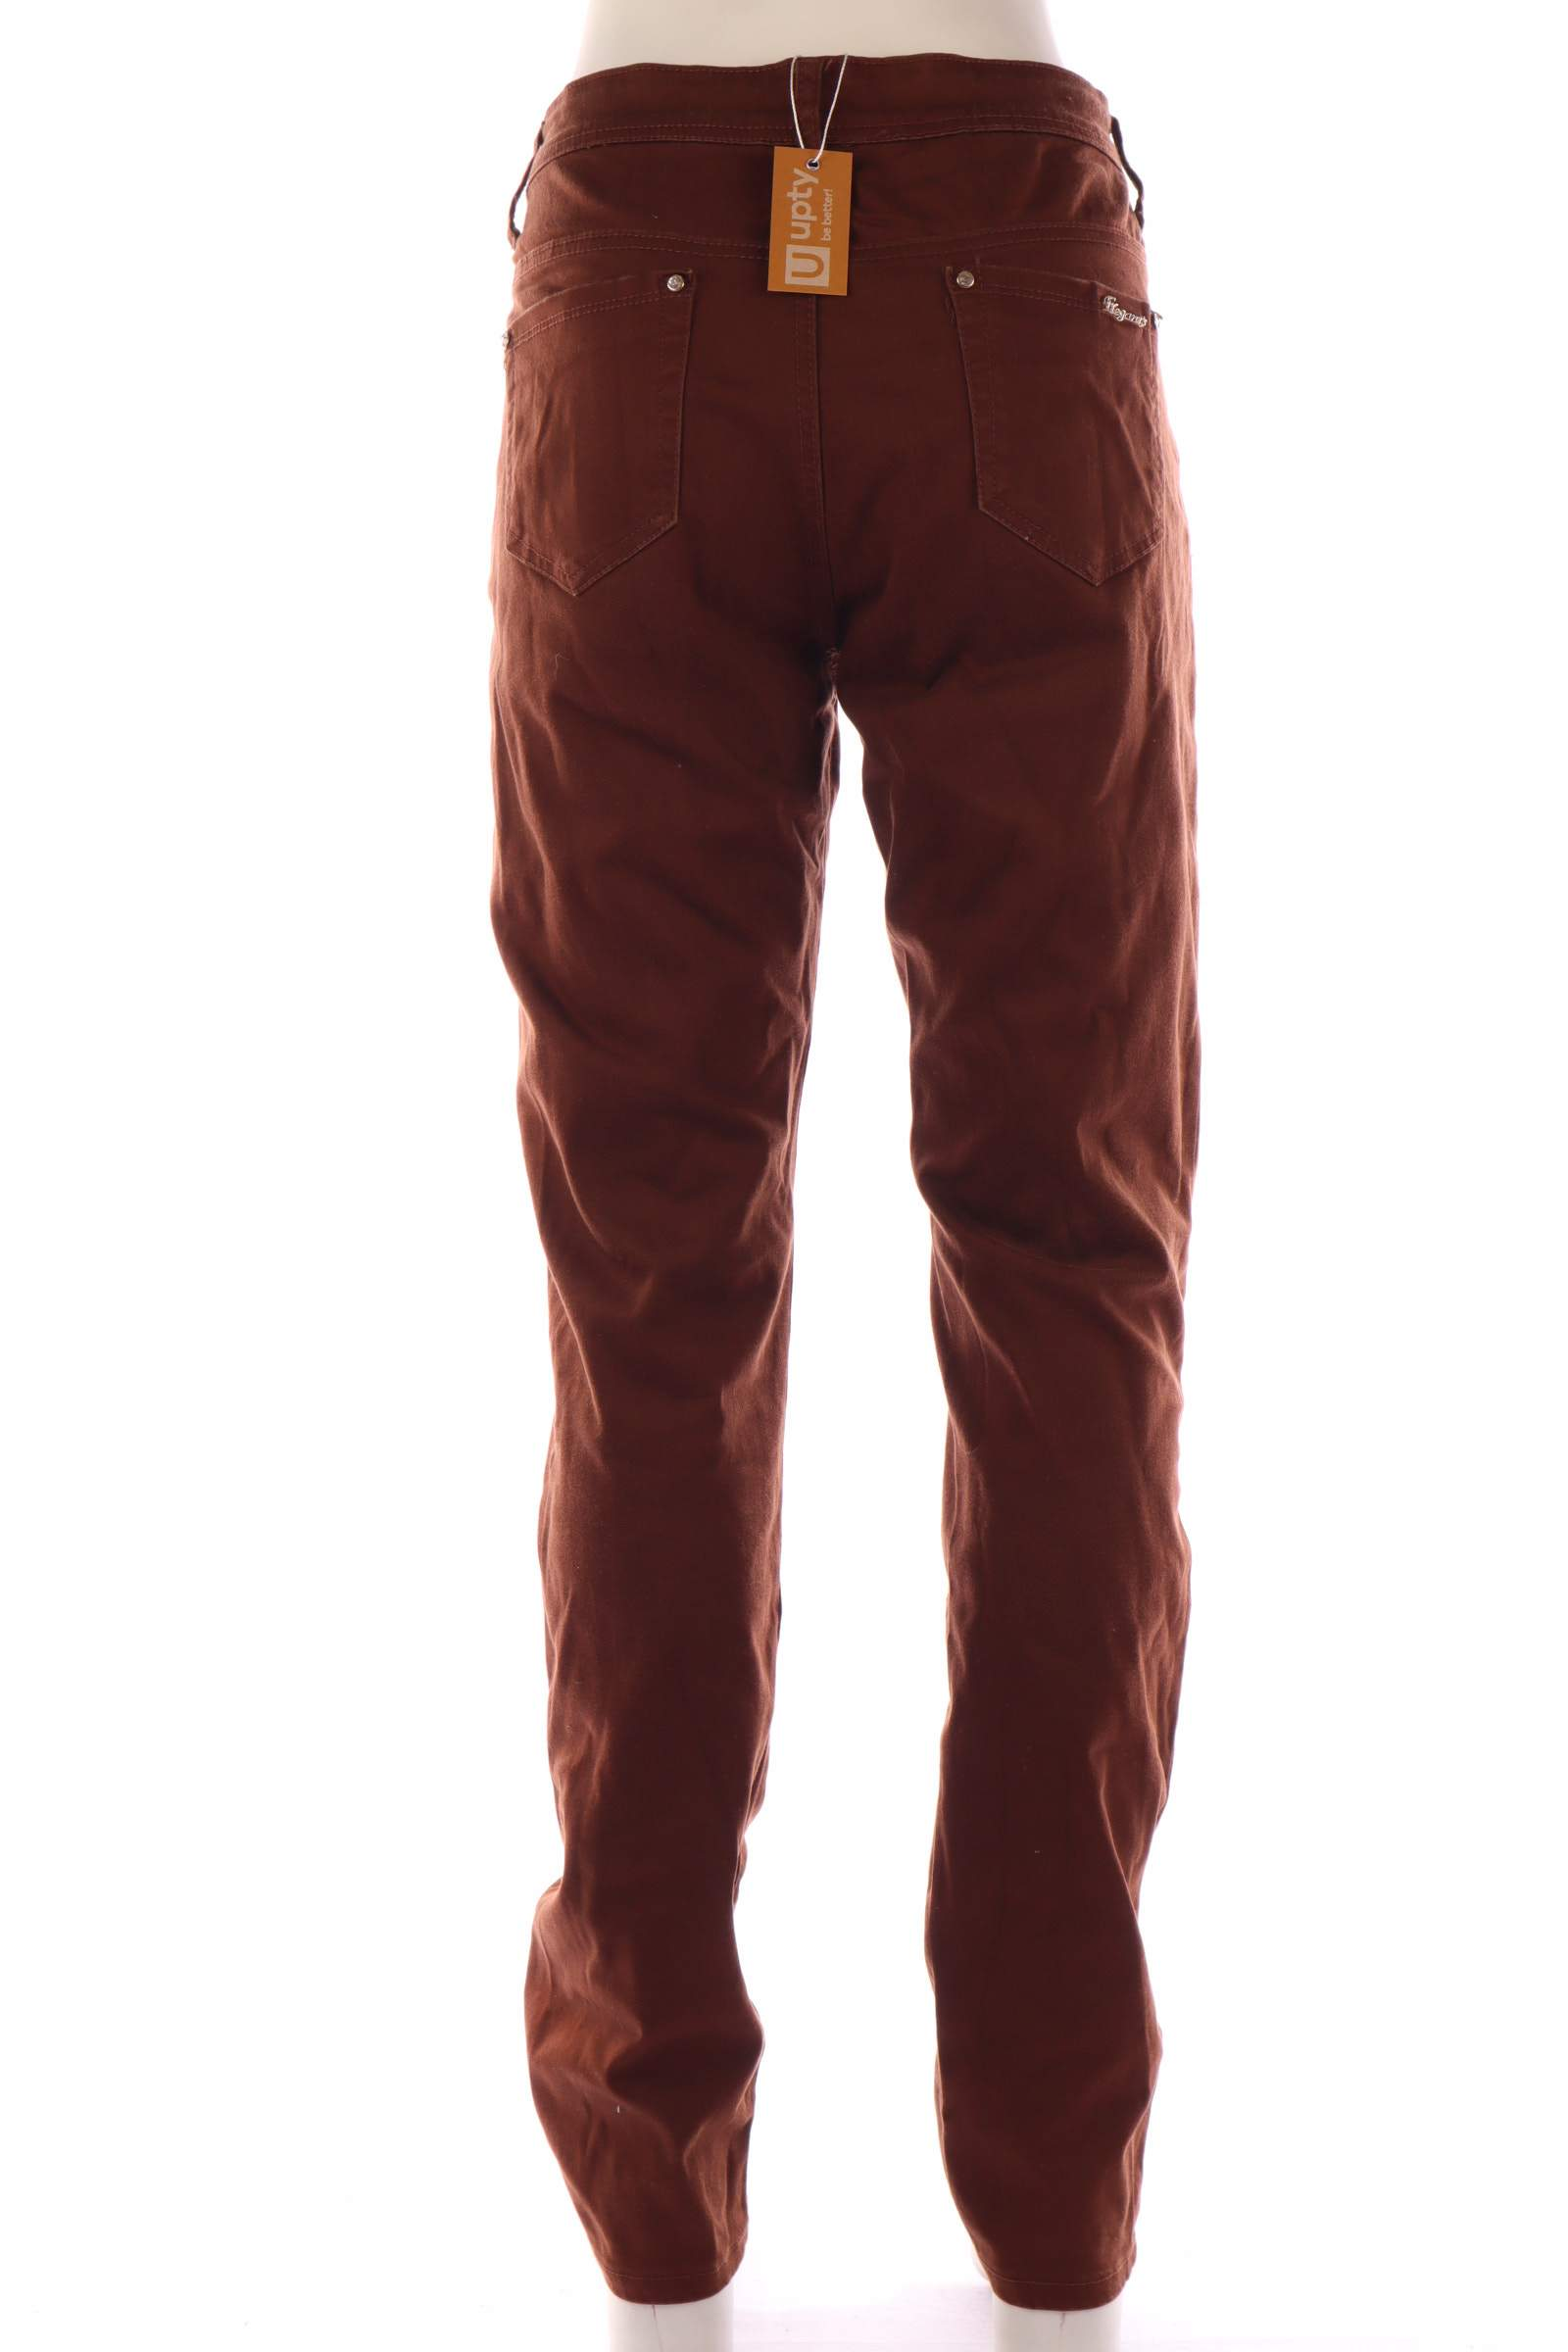 Fleganants Brown Pants - upty.store